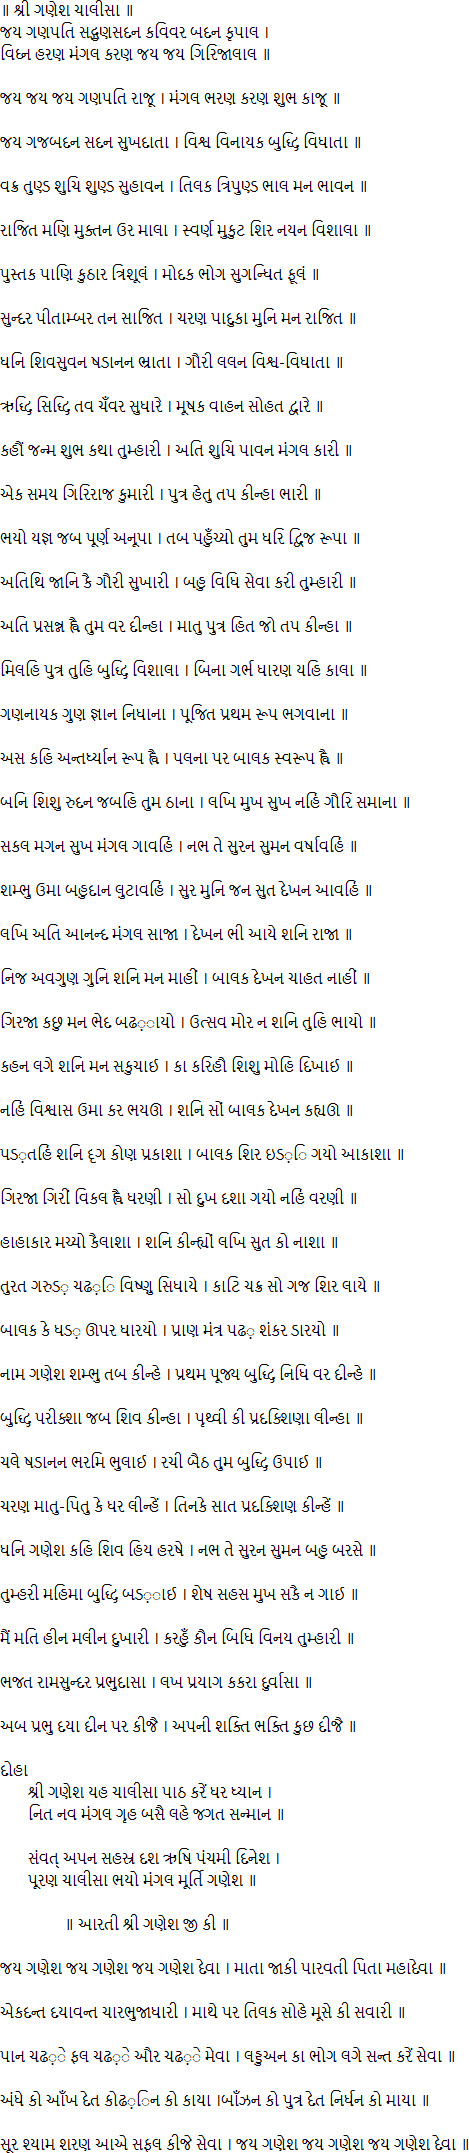 ganesh chalisa in gujarati ganesh chalisa in gujarati pdf free download ganesh chalisa in gujarati ganesh chalisa in gujarati text ganesh chalisa lyrics in gujarati ganesh chalisa in gujarati pdf download ganesh chalisa mp3 in gujarati ganesh chalisa full in hindi ganesh chalisa lyrics in hindi download ganesh chalisa lyrics shree ganesh chalisa ganesh chalisa lyrics in hindi shiv chalisa in hindi pdf ganesh aarti in hindi pdf suresh wadkar ganesh chalisa ganesh chalisa in marathi ganesh chalisa in hindi with meaning ganesh chalisa in english pdf ganesh chalisa free download ganesh chalisa in pdf ganesh chalisa ke labh benefits of ganesh chalisa